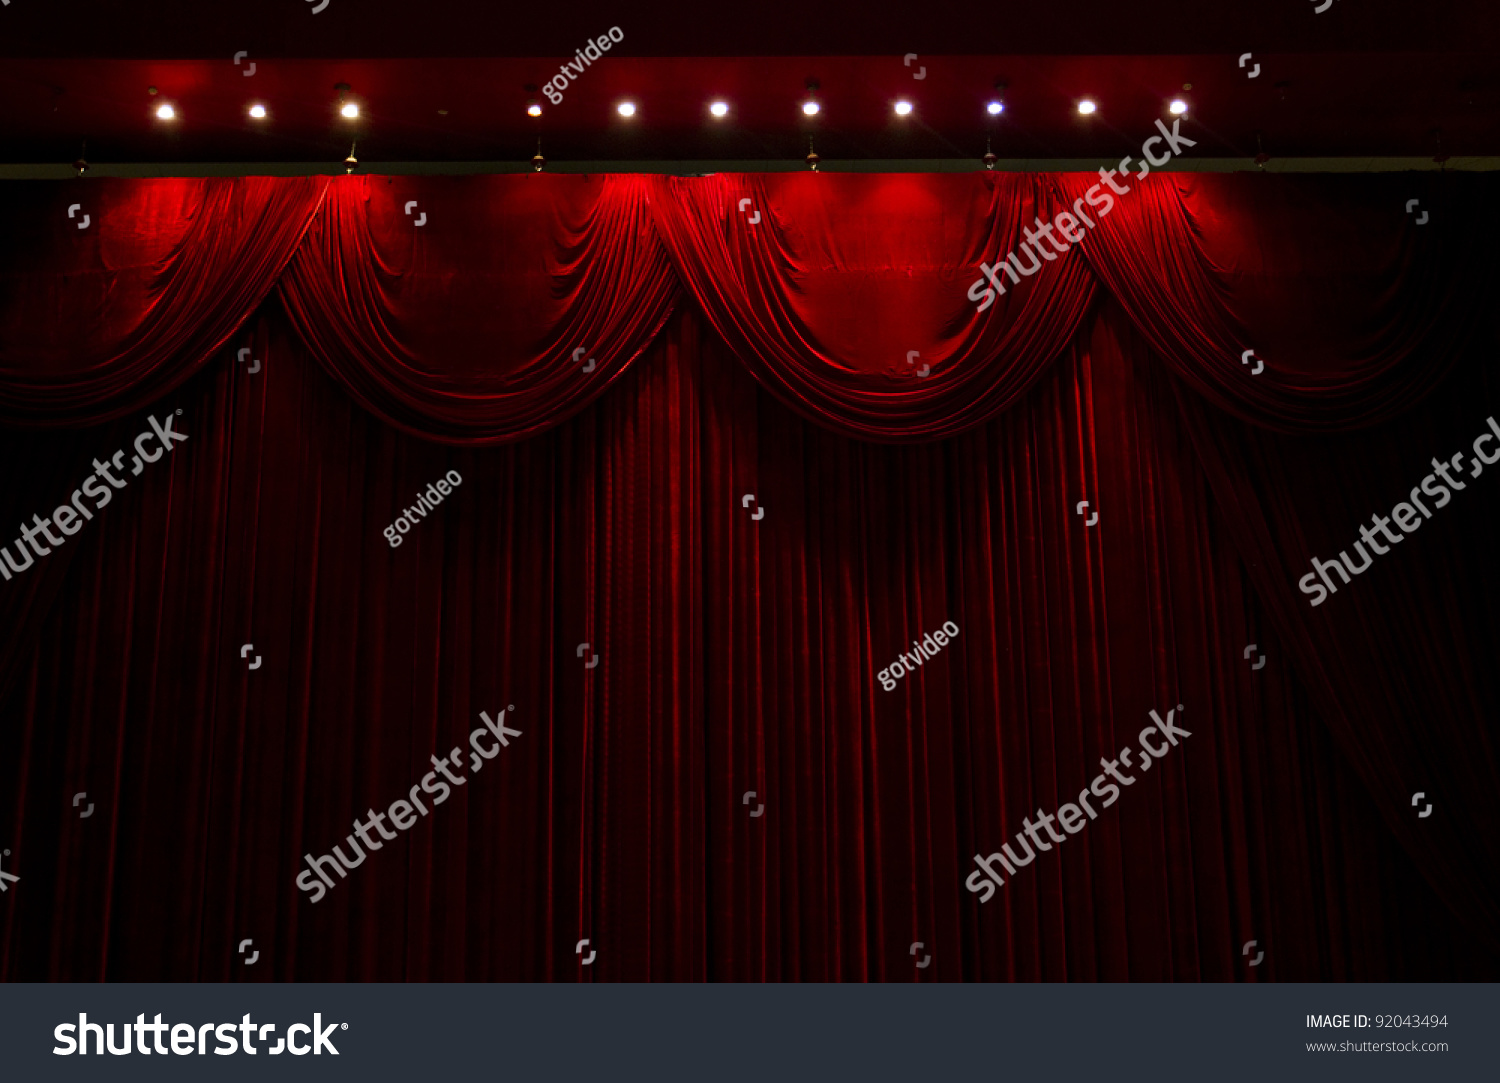 Cheap black stage curtains - Red Velvet Curtains Red Velvet Stage Theater Curtains Preview Save To A Lightbox